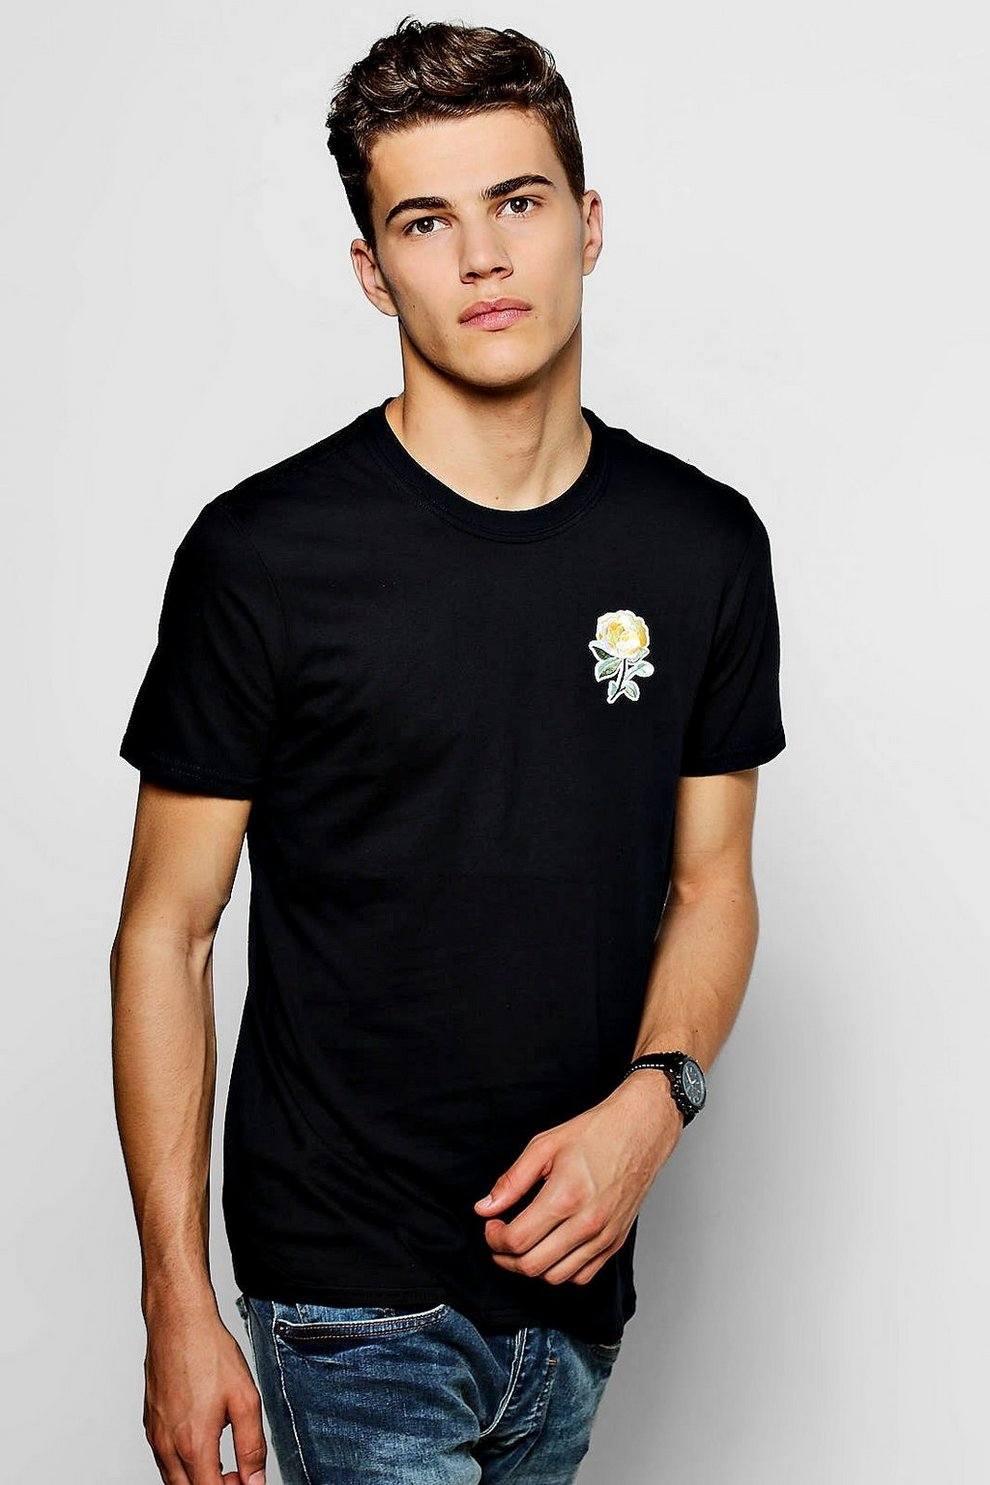 c57219c2 Mens Black Floral Embroidered T-Shirt. Hover to zoom